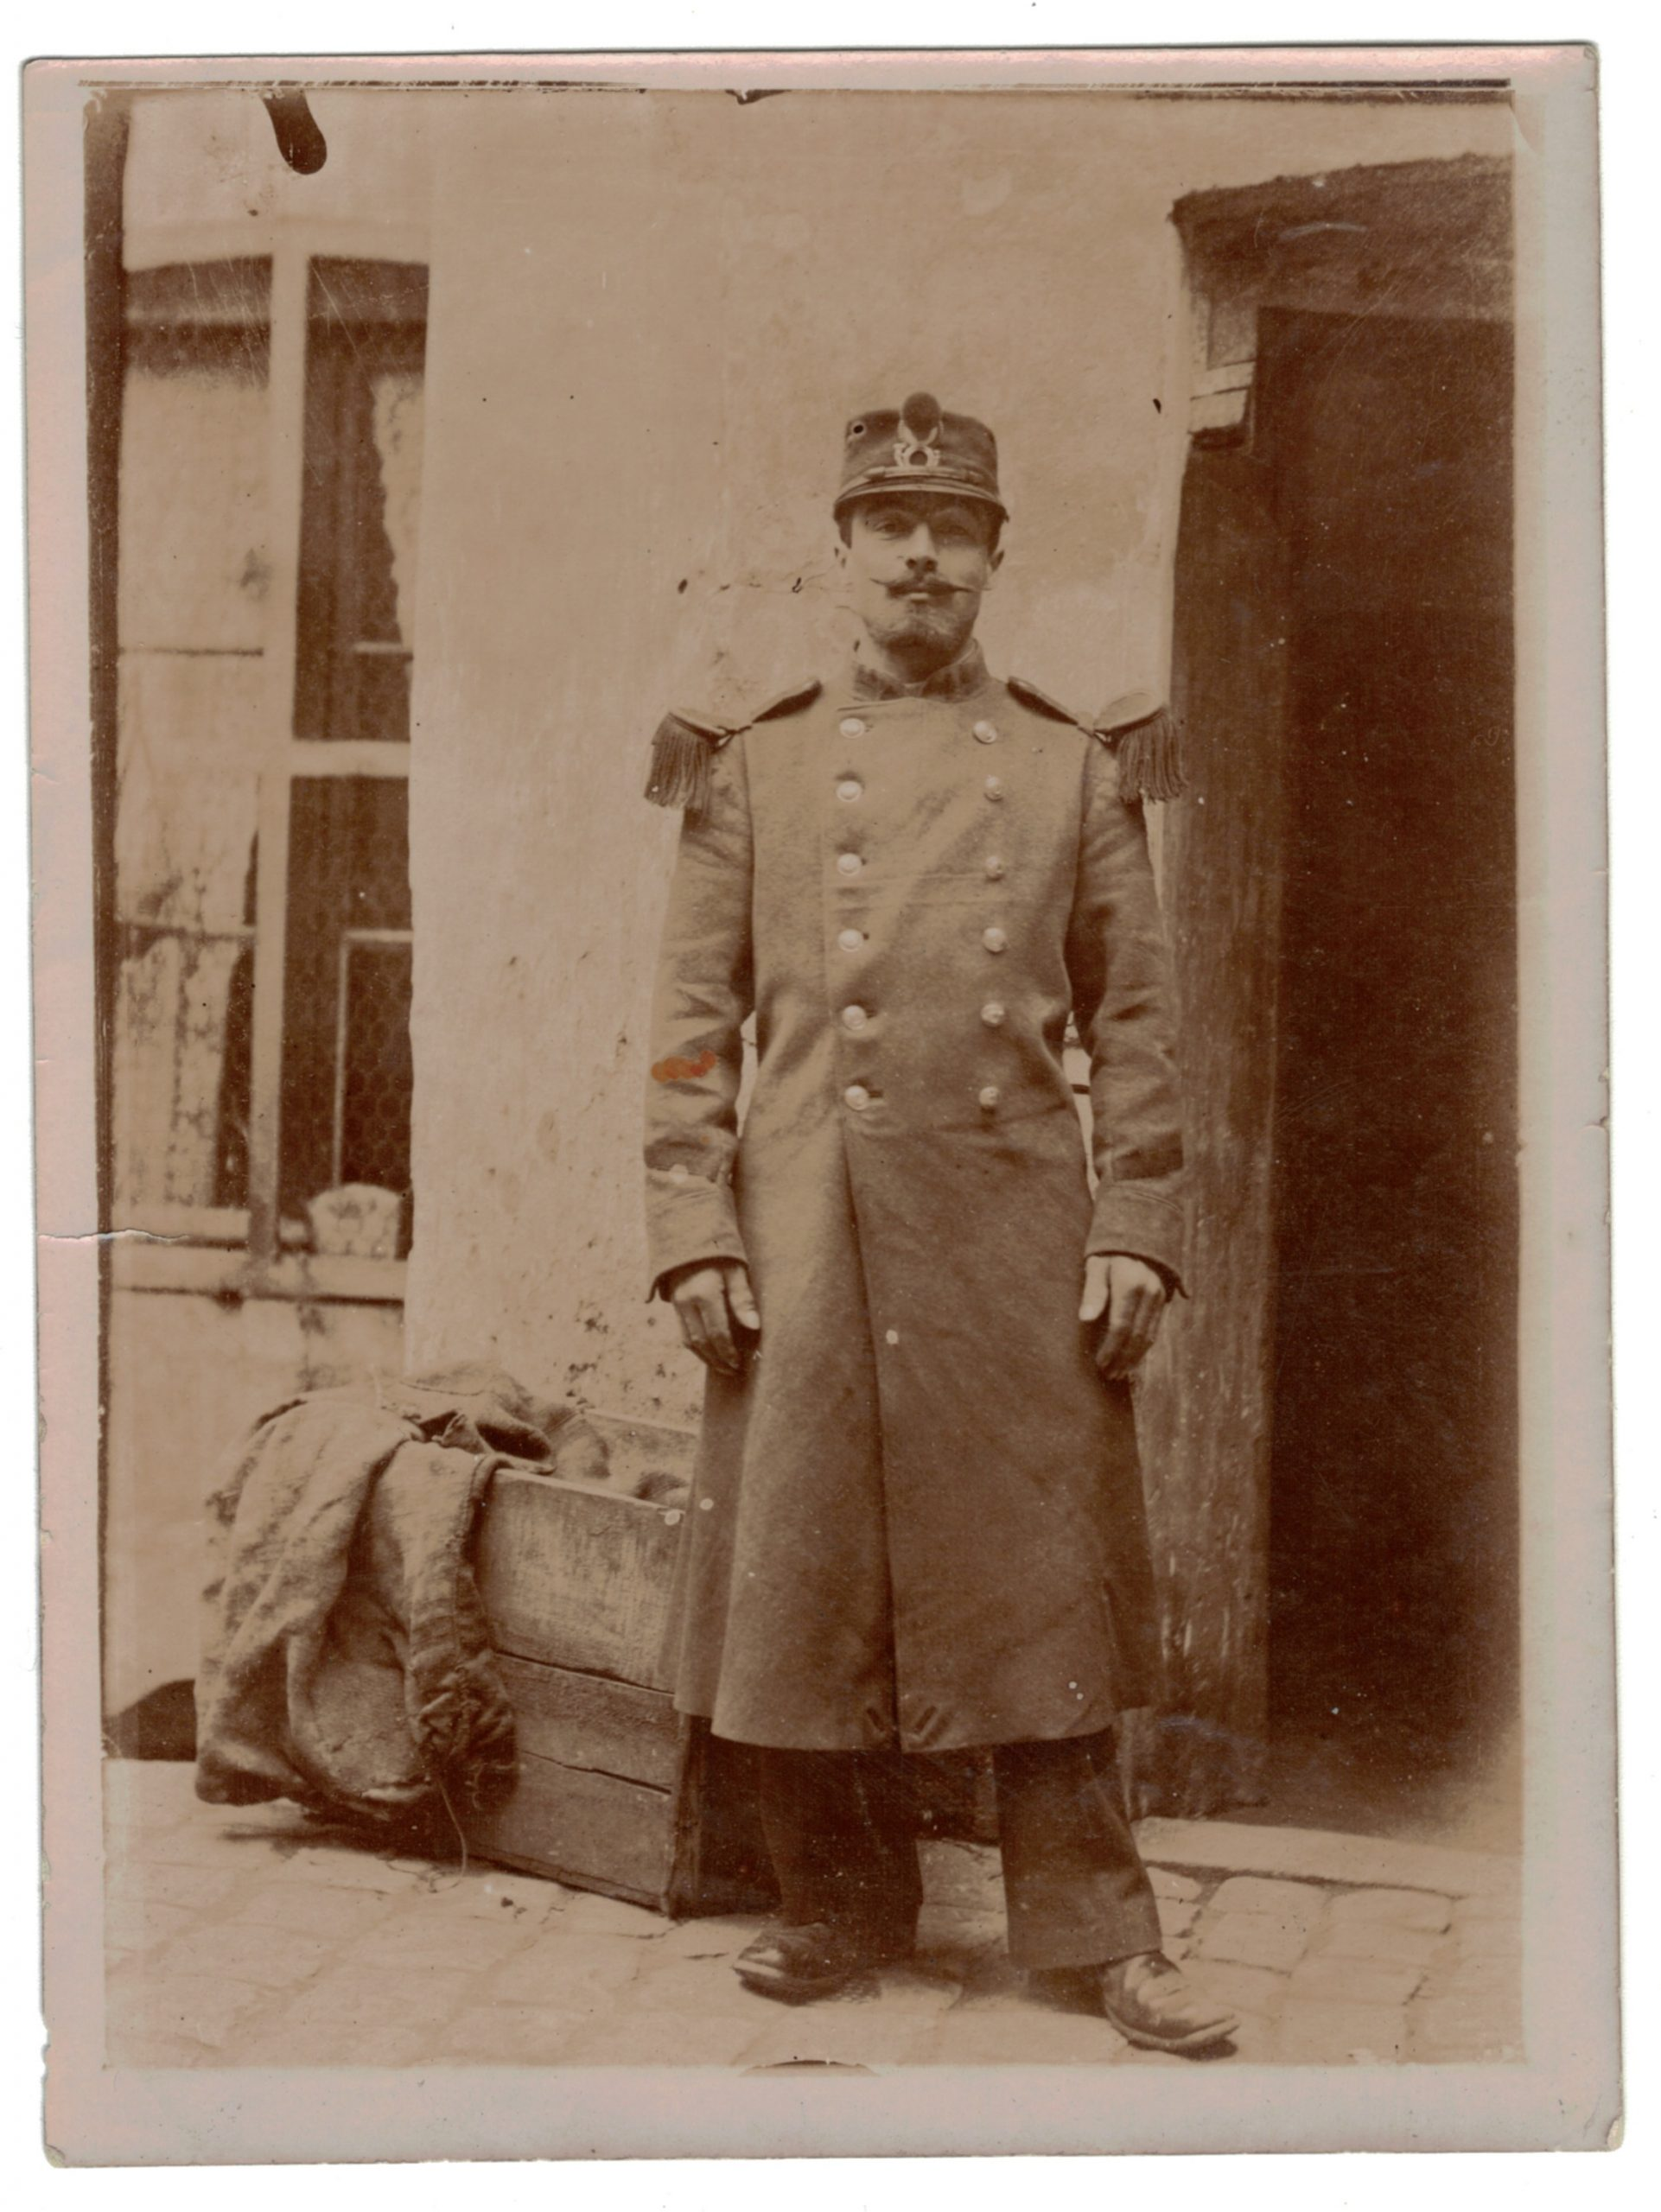 Photo papier originale - Infanterie / Chasseur - 1898 / 1900 - Uniforme - 3èm République - France